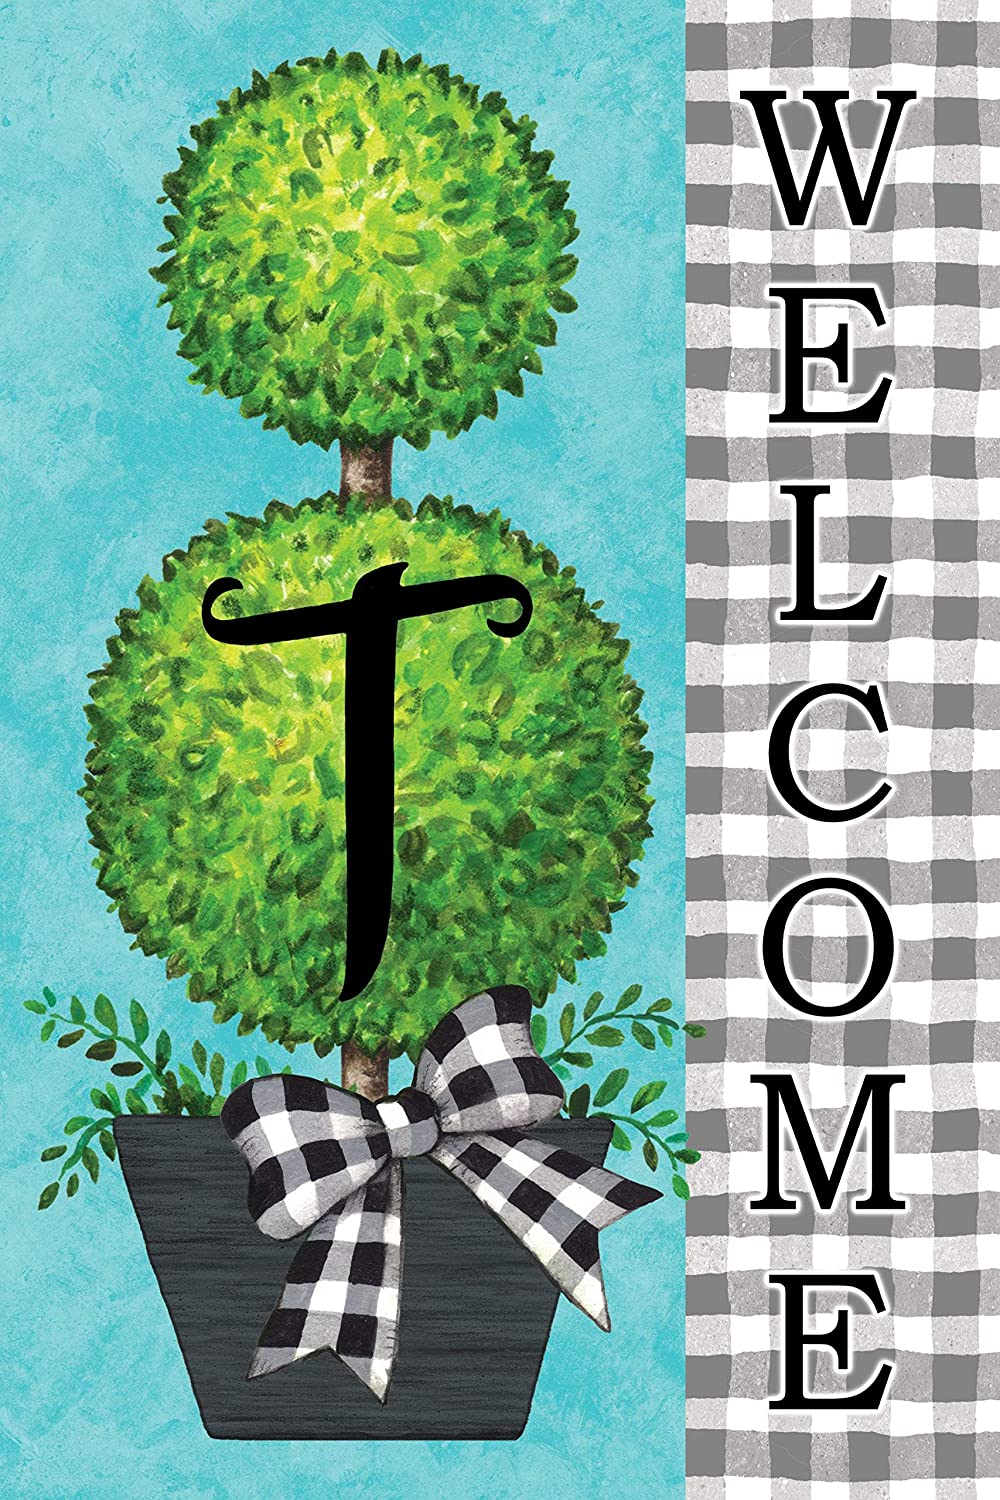 Custom Decor Gingham Topiary - Letter T - Embroidered Monogram - Decorative Double Sided Flag - Garden Size, 12 Inch X 18 Inch, Licensed, Copyright & Trademark CDI. USA